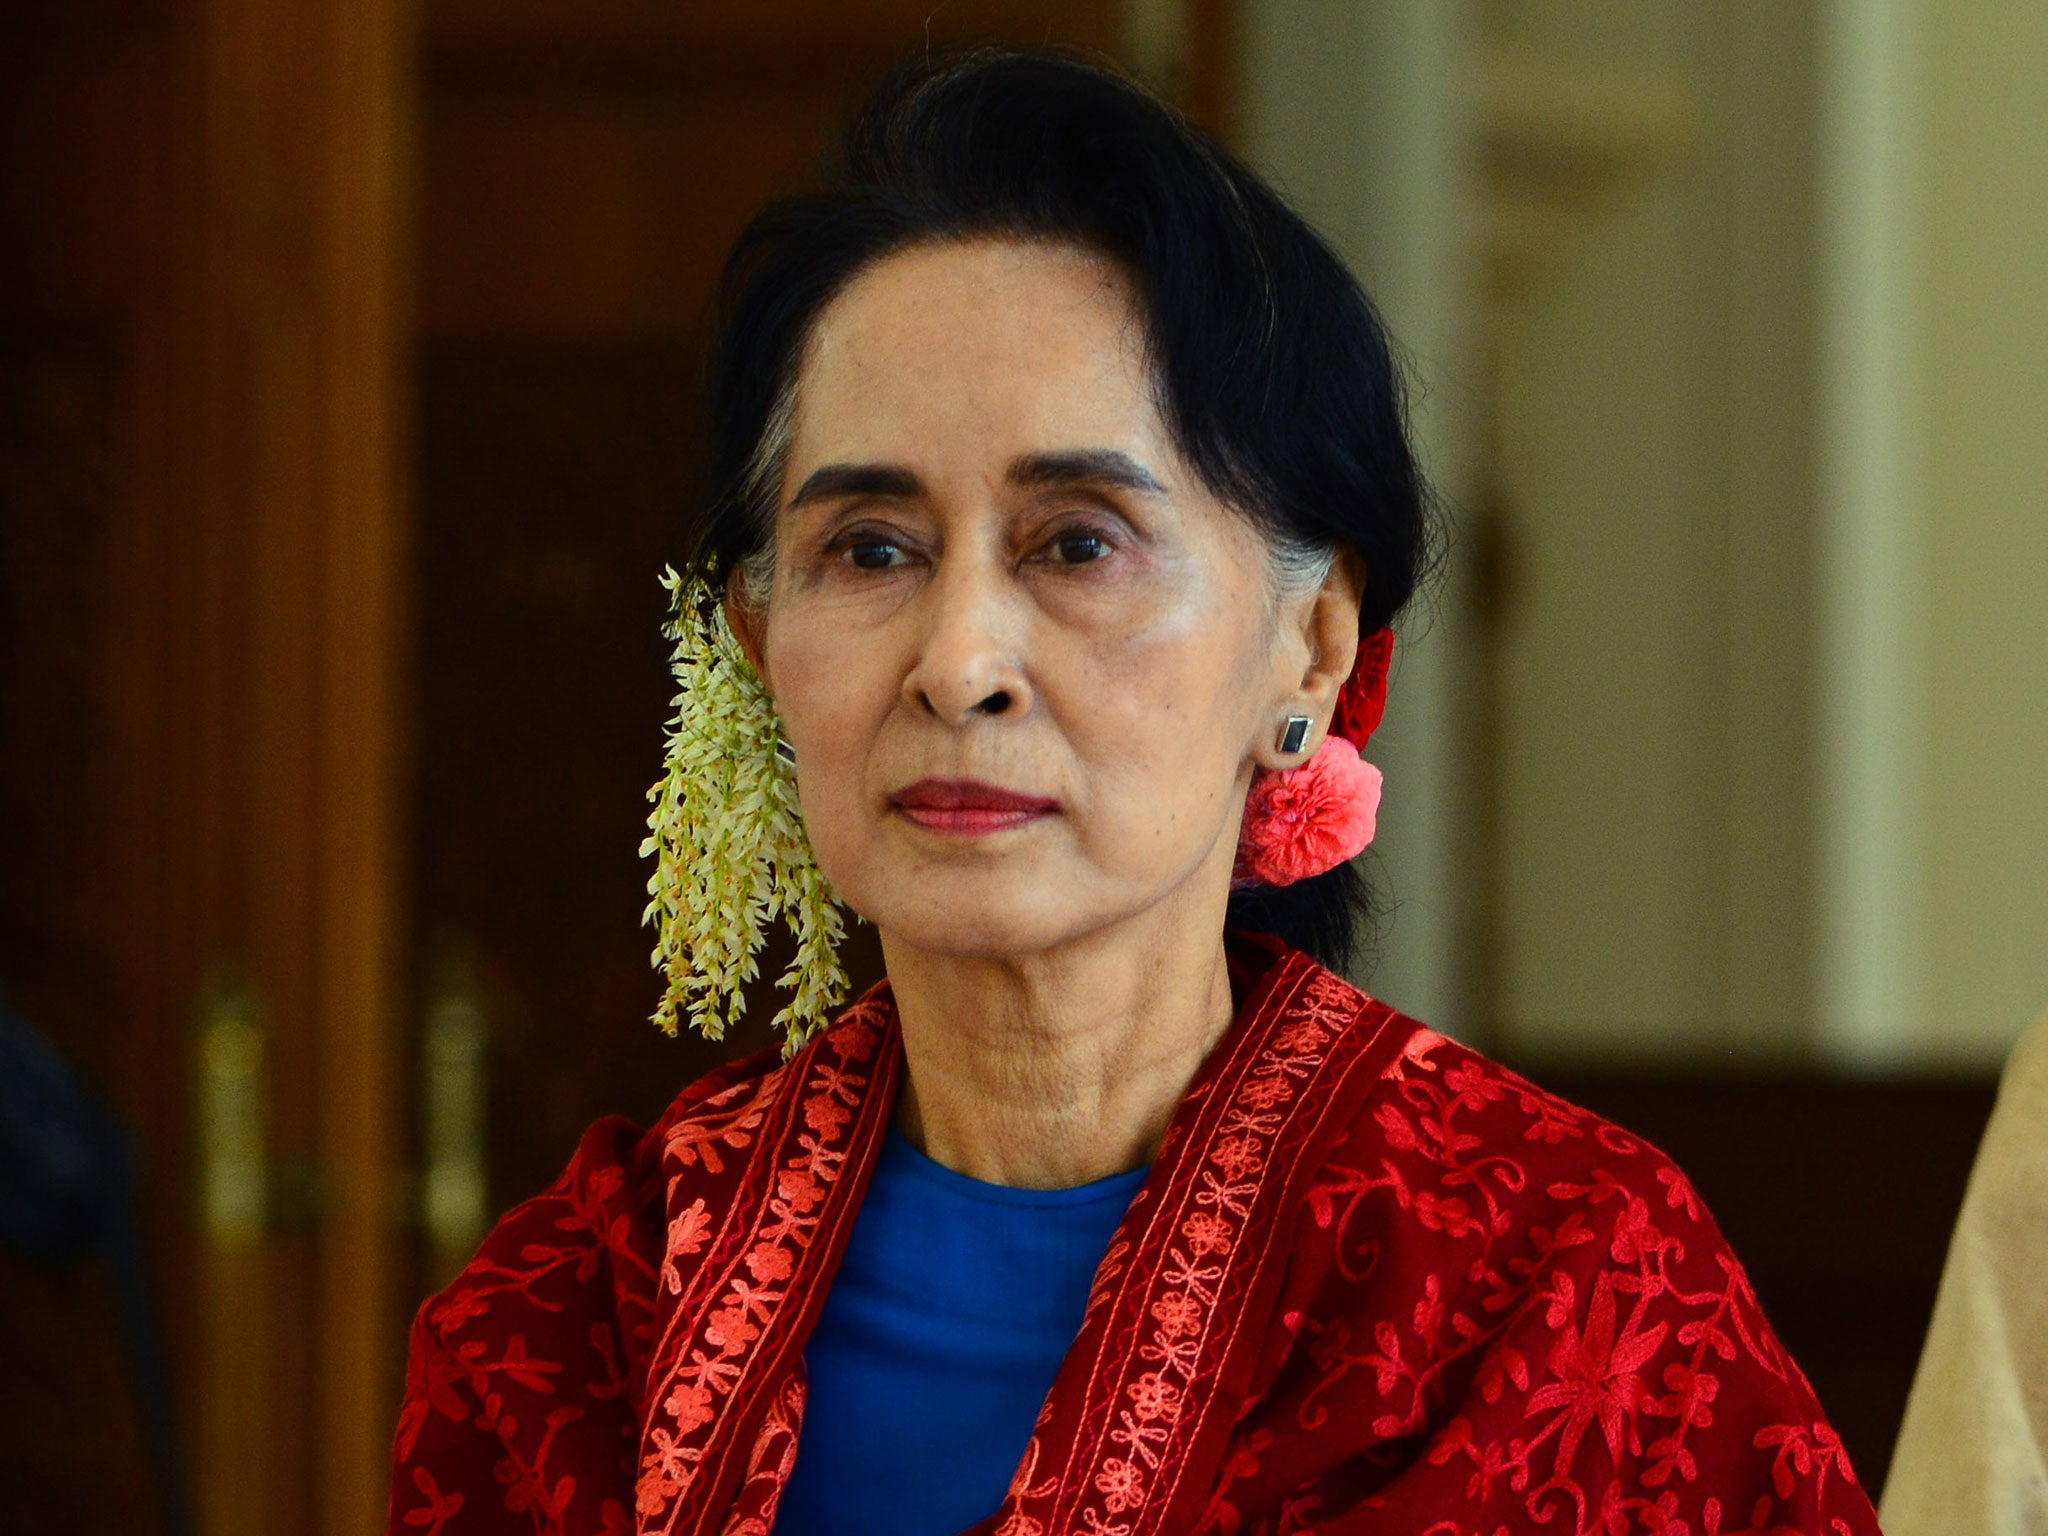 Aung San Suu Kyi says Burmese children are 'wasting time ...